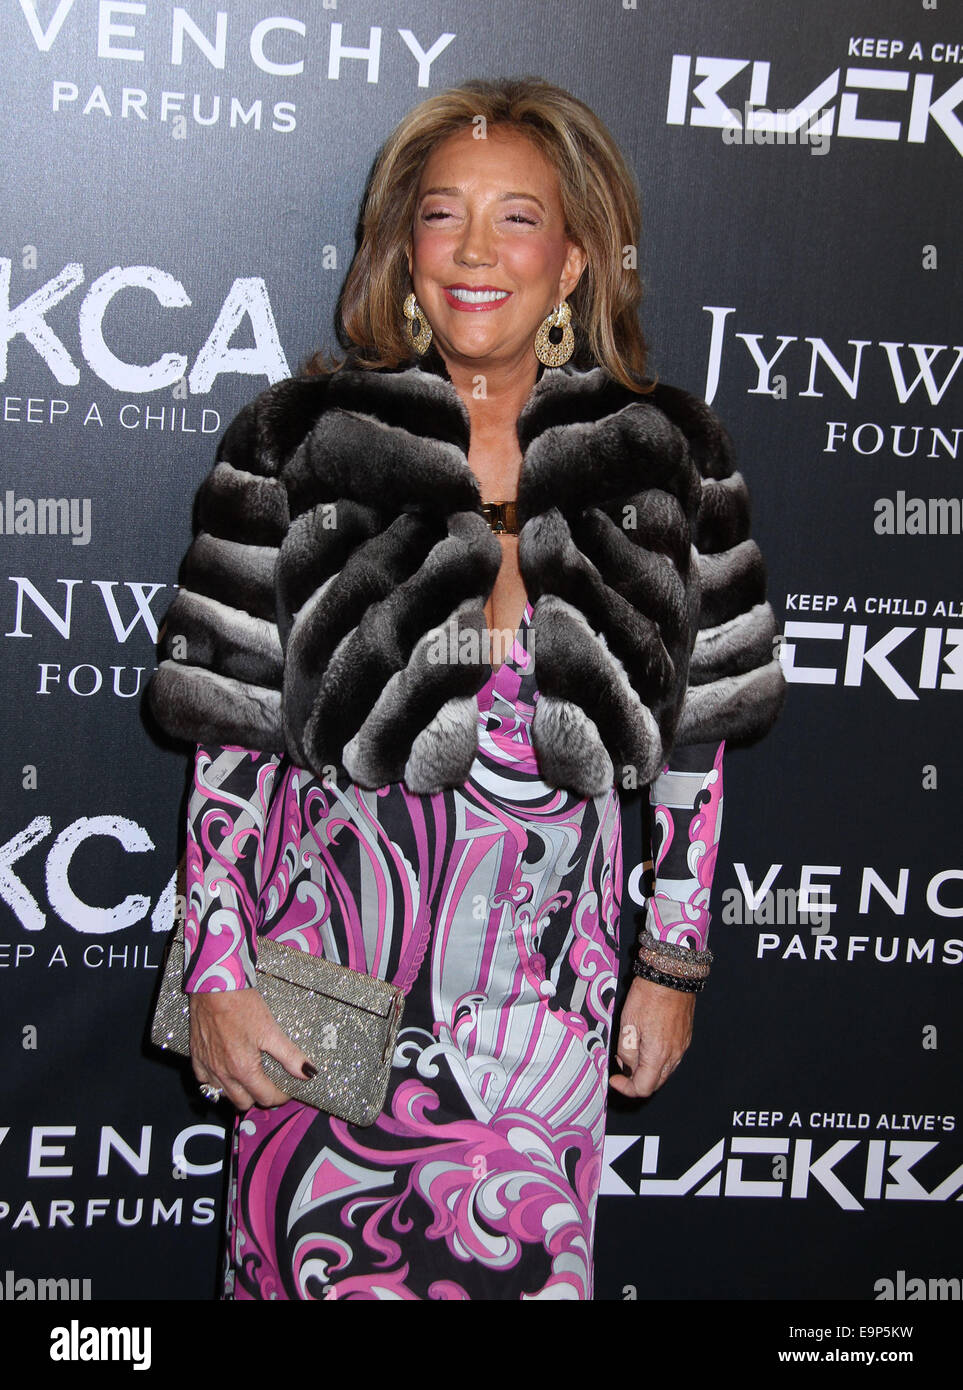 Denise Rich Stock Photos Images Page 3 Alamy Parfum J Lo Glow Kw New York Usa 30th Oct 2014 Socialite